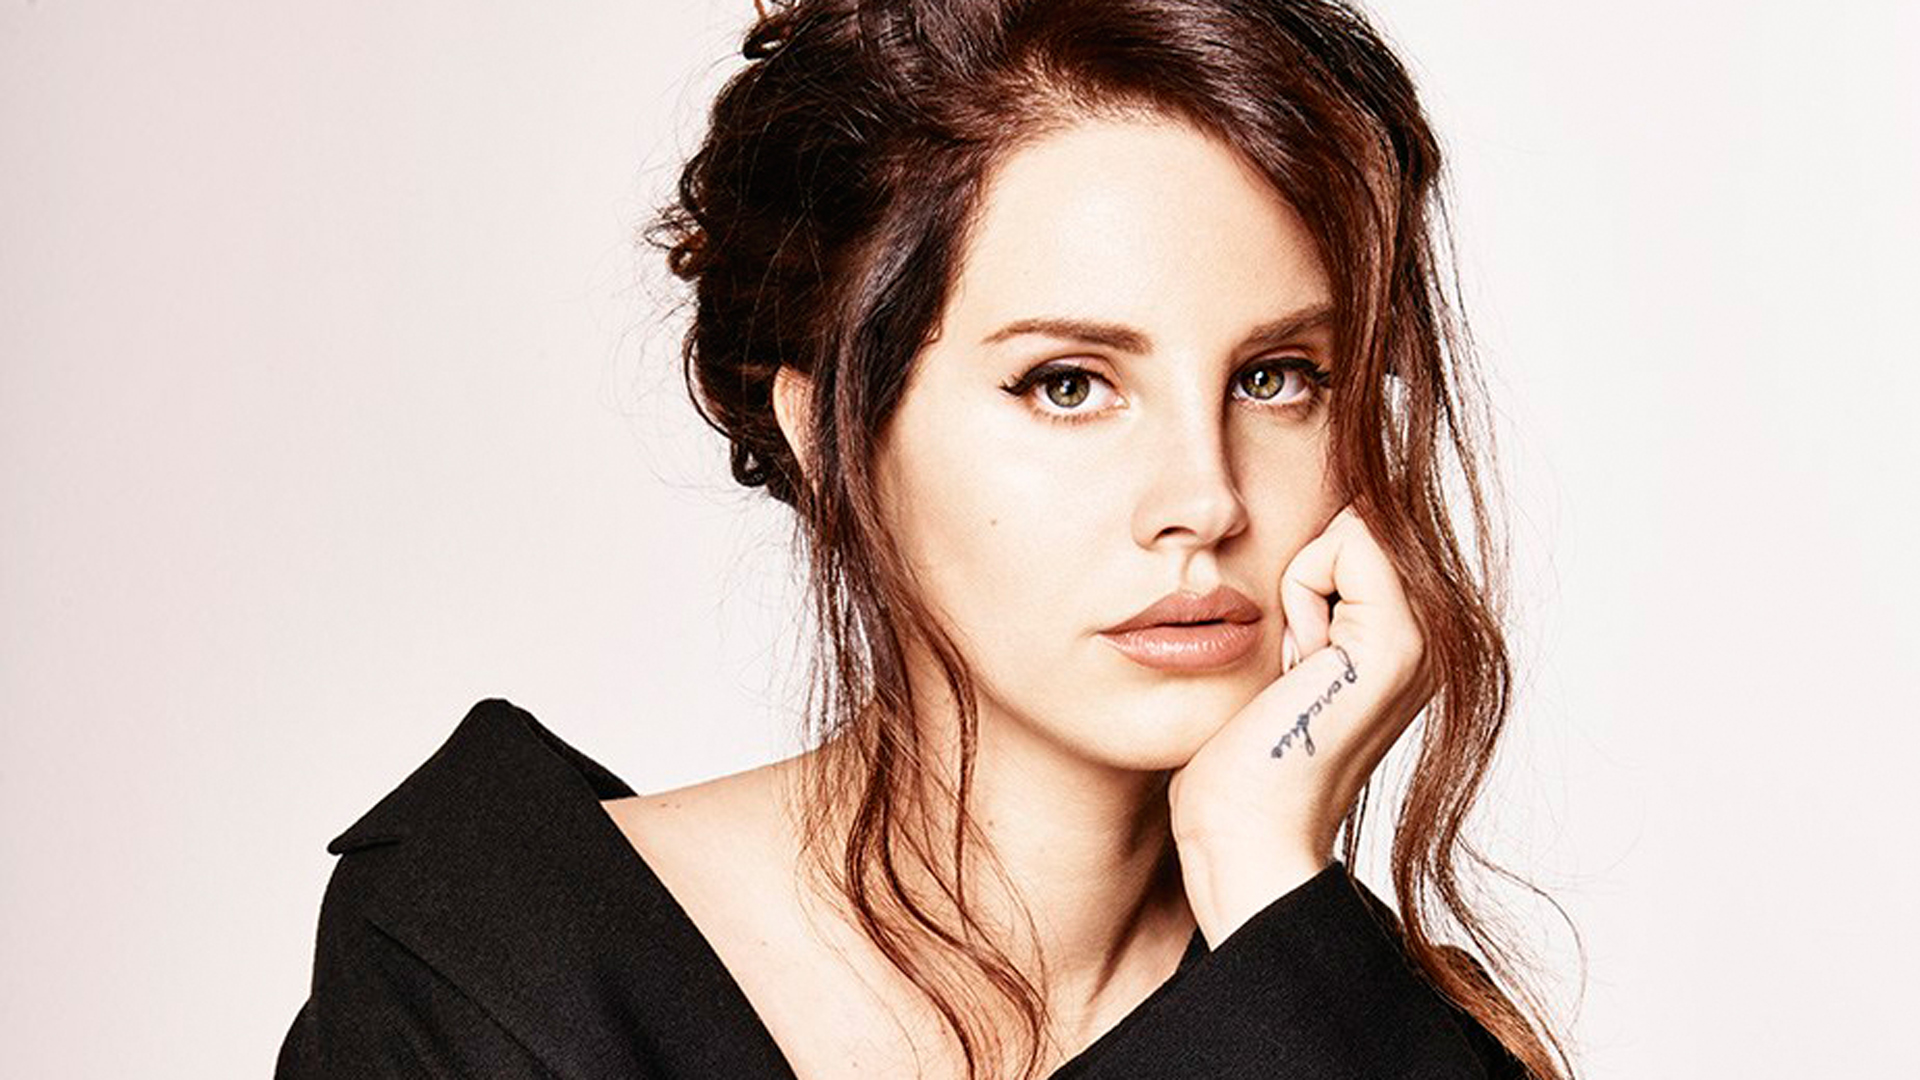 HD Lana Del Rey Wallpapers HdCoolWallpapersCom 1920x1080